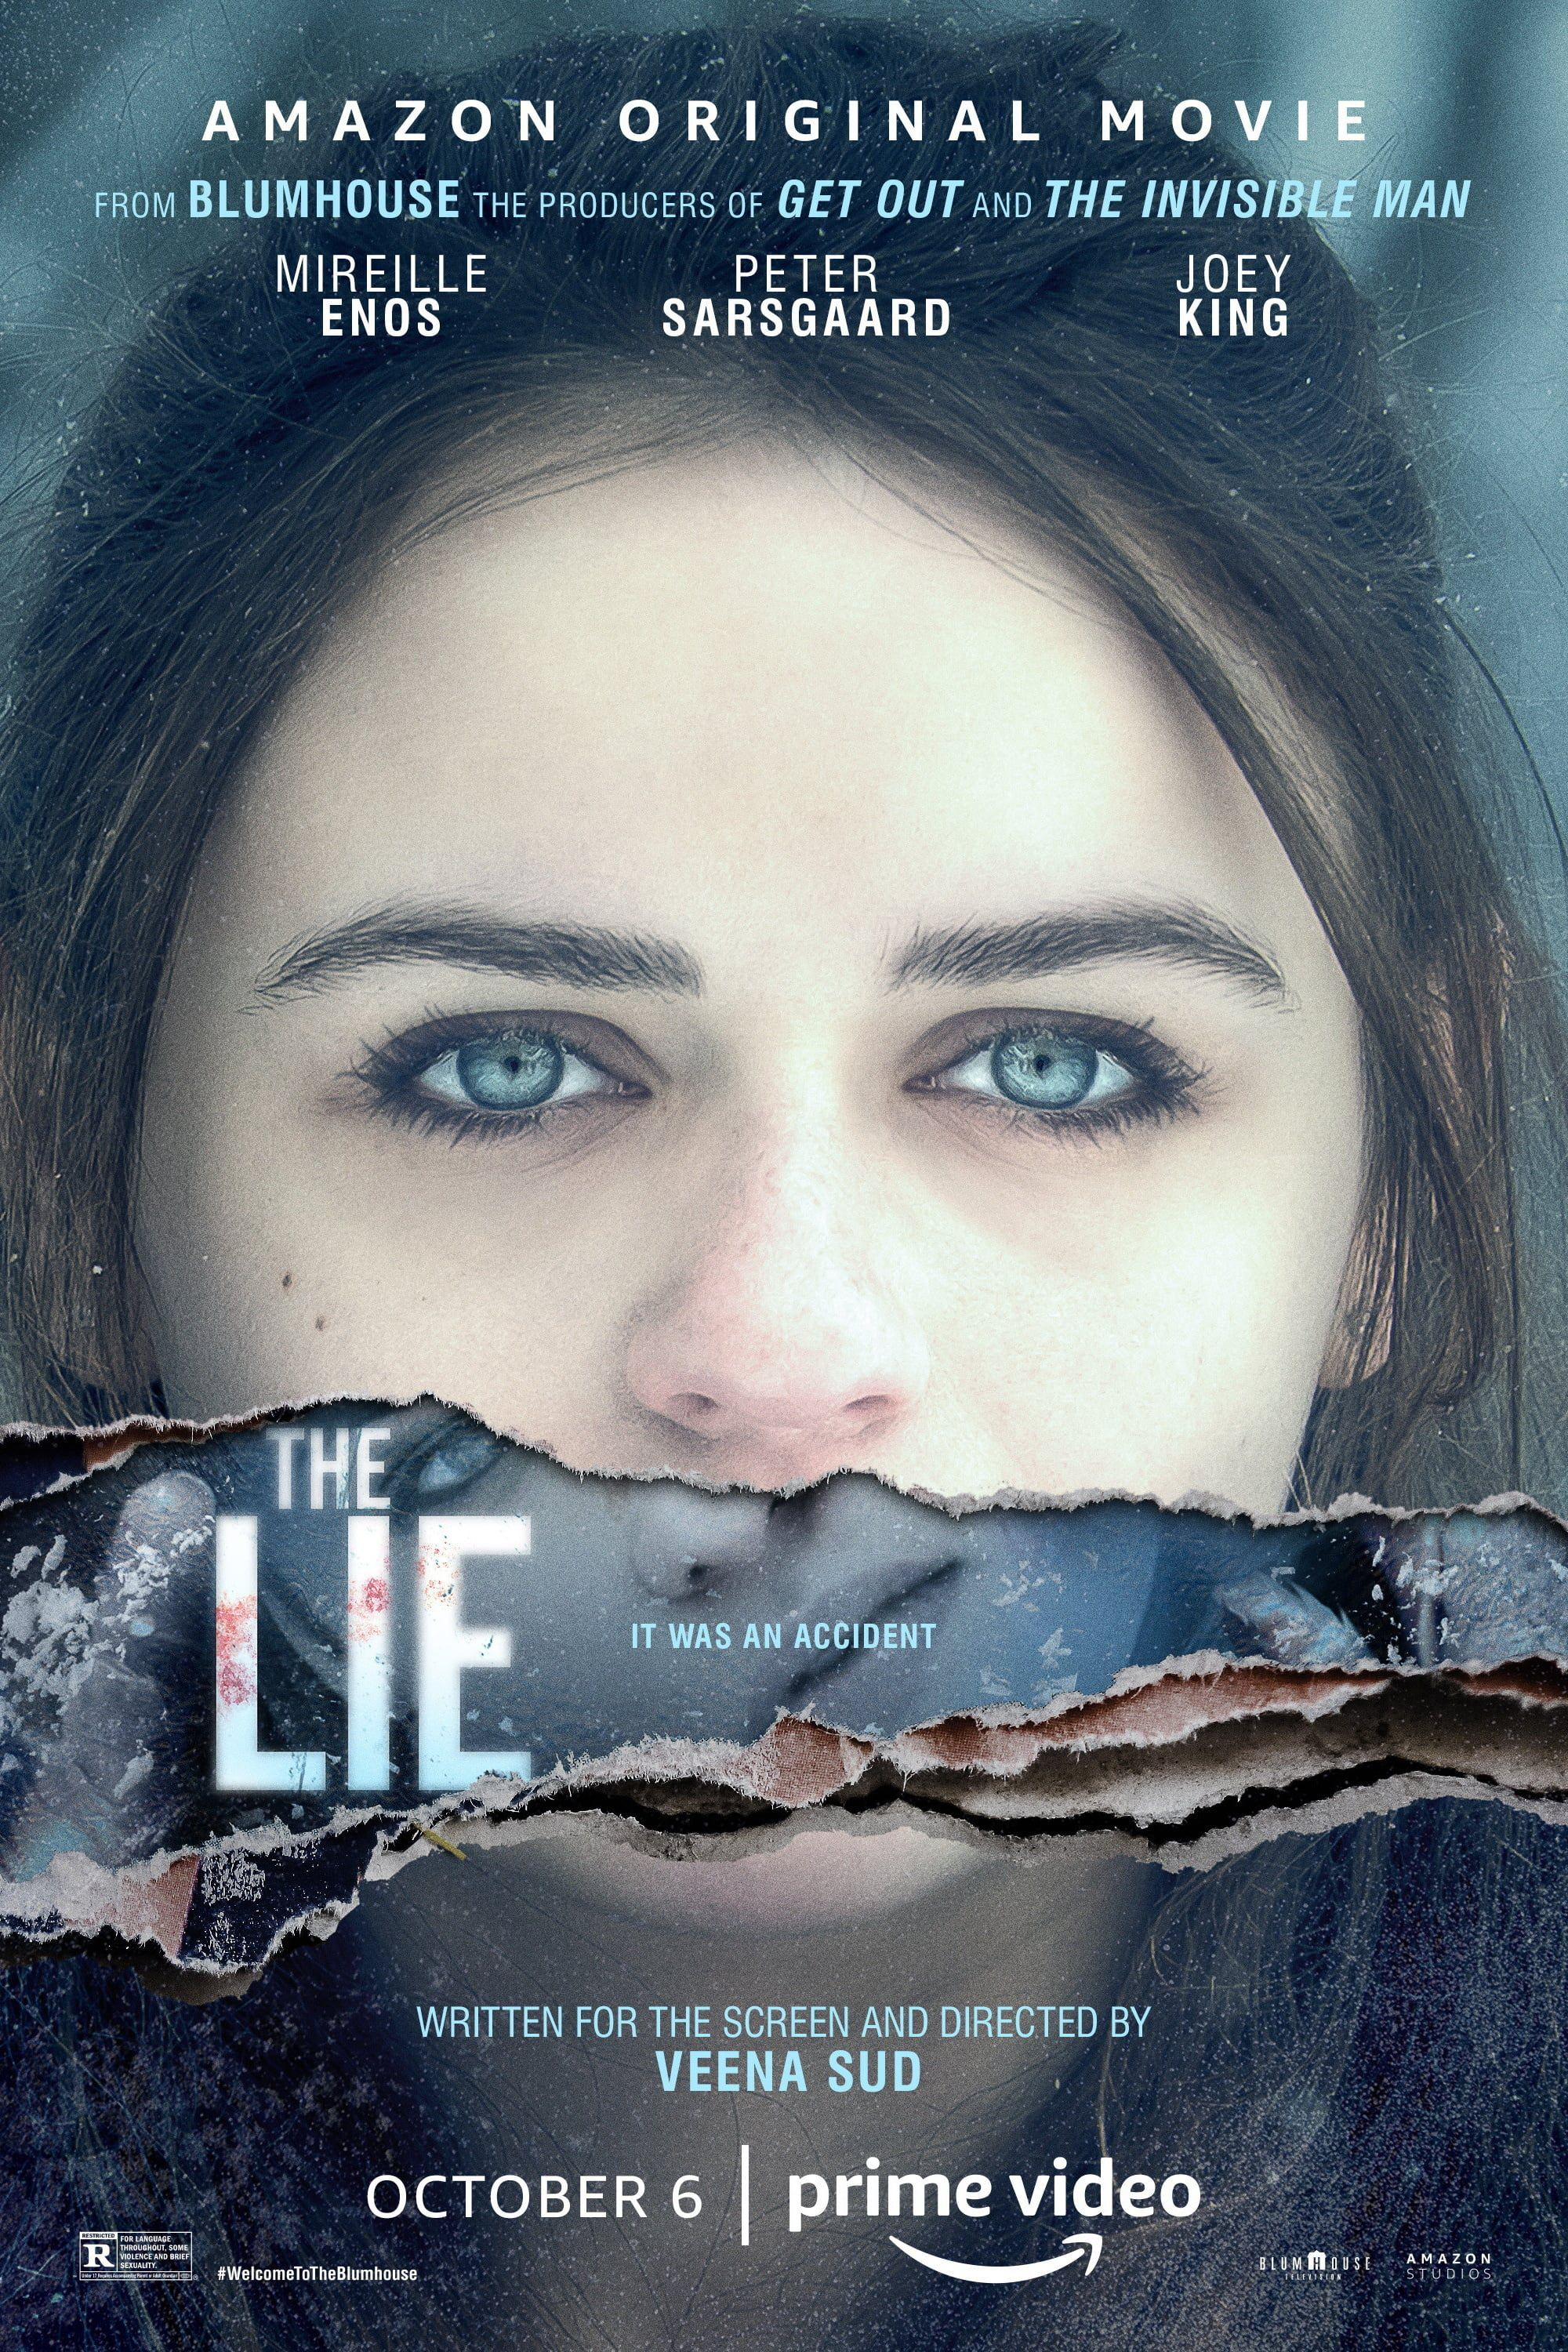 Voir Film The Lie - Film (2020) streaming VF gratuit complet